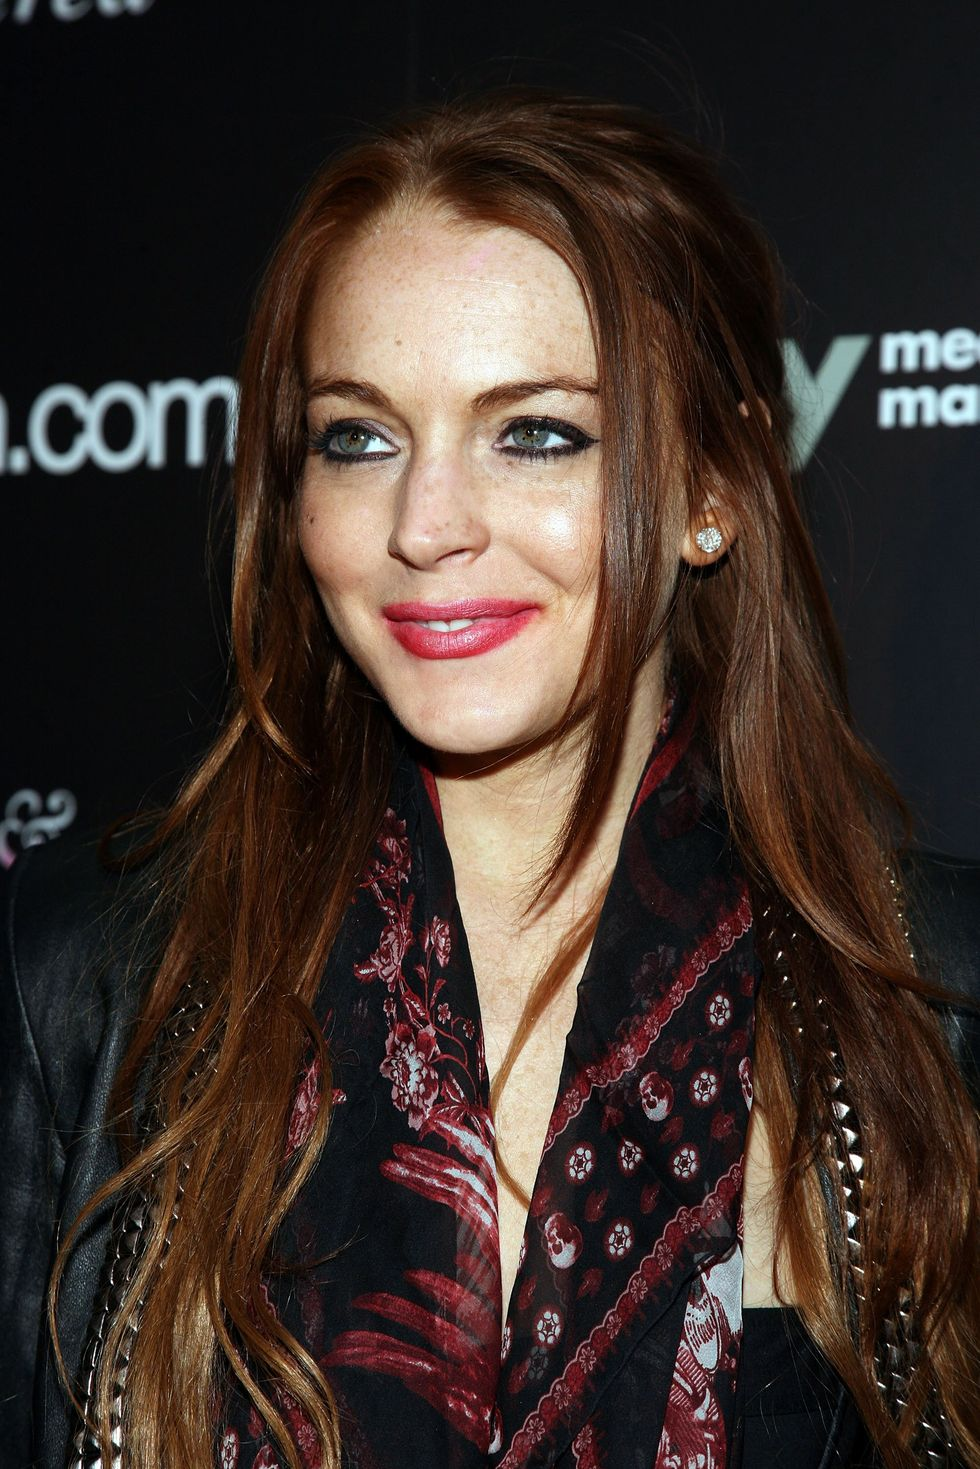 lindsay-lohan-haute-and-bothered-launch-party-in-hollywood-03